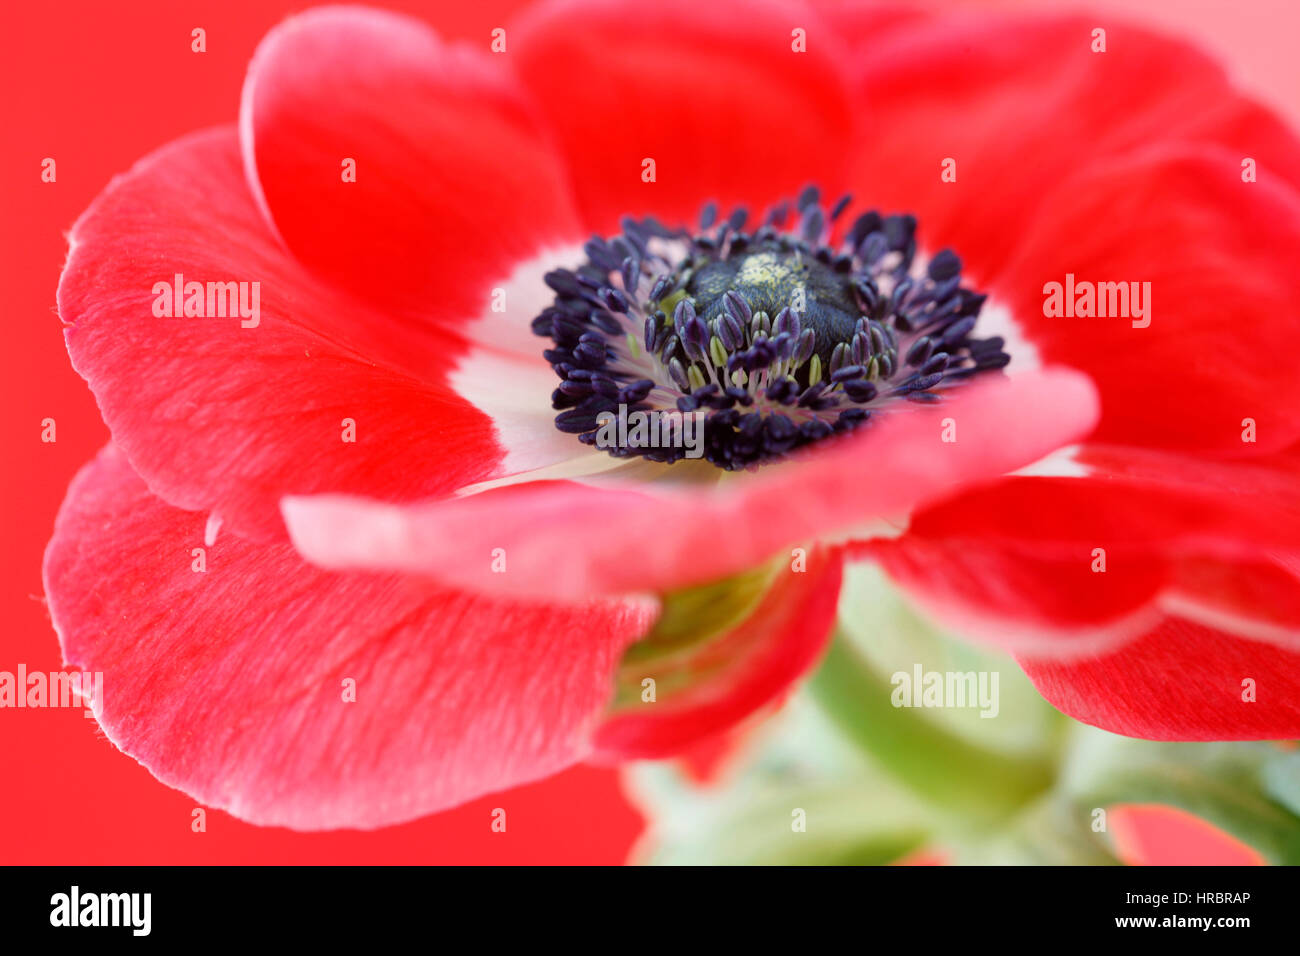 exquisite red anemone still life - red on red Jane Ann Butler Photography  JABP1845 - Stock Image